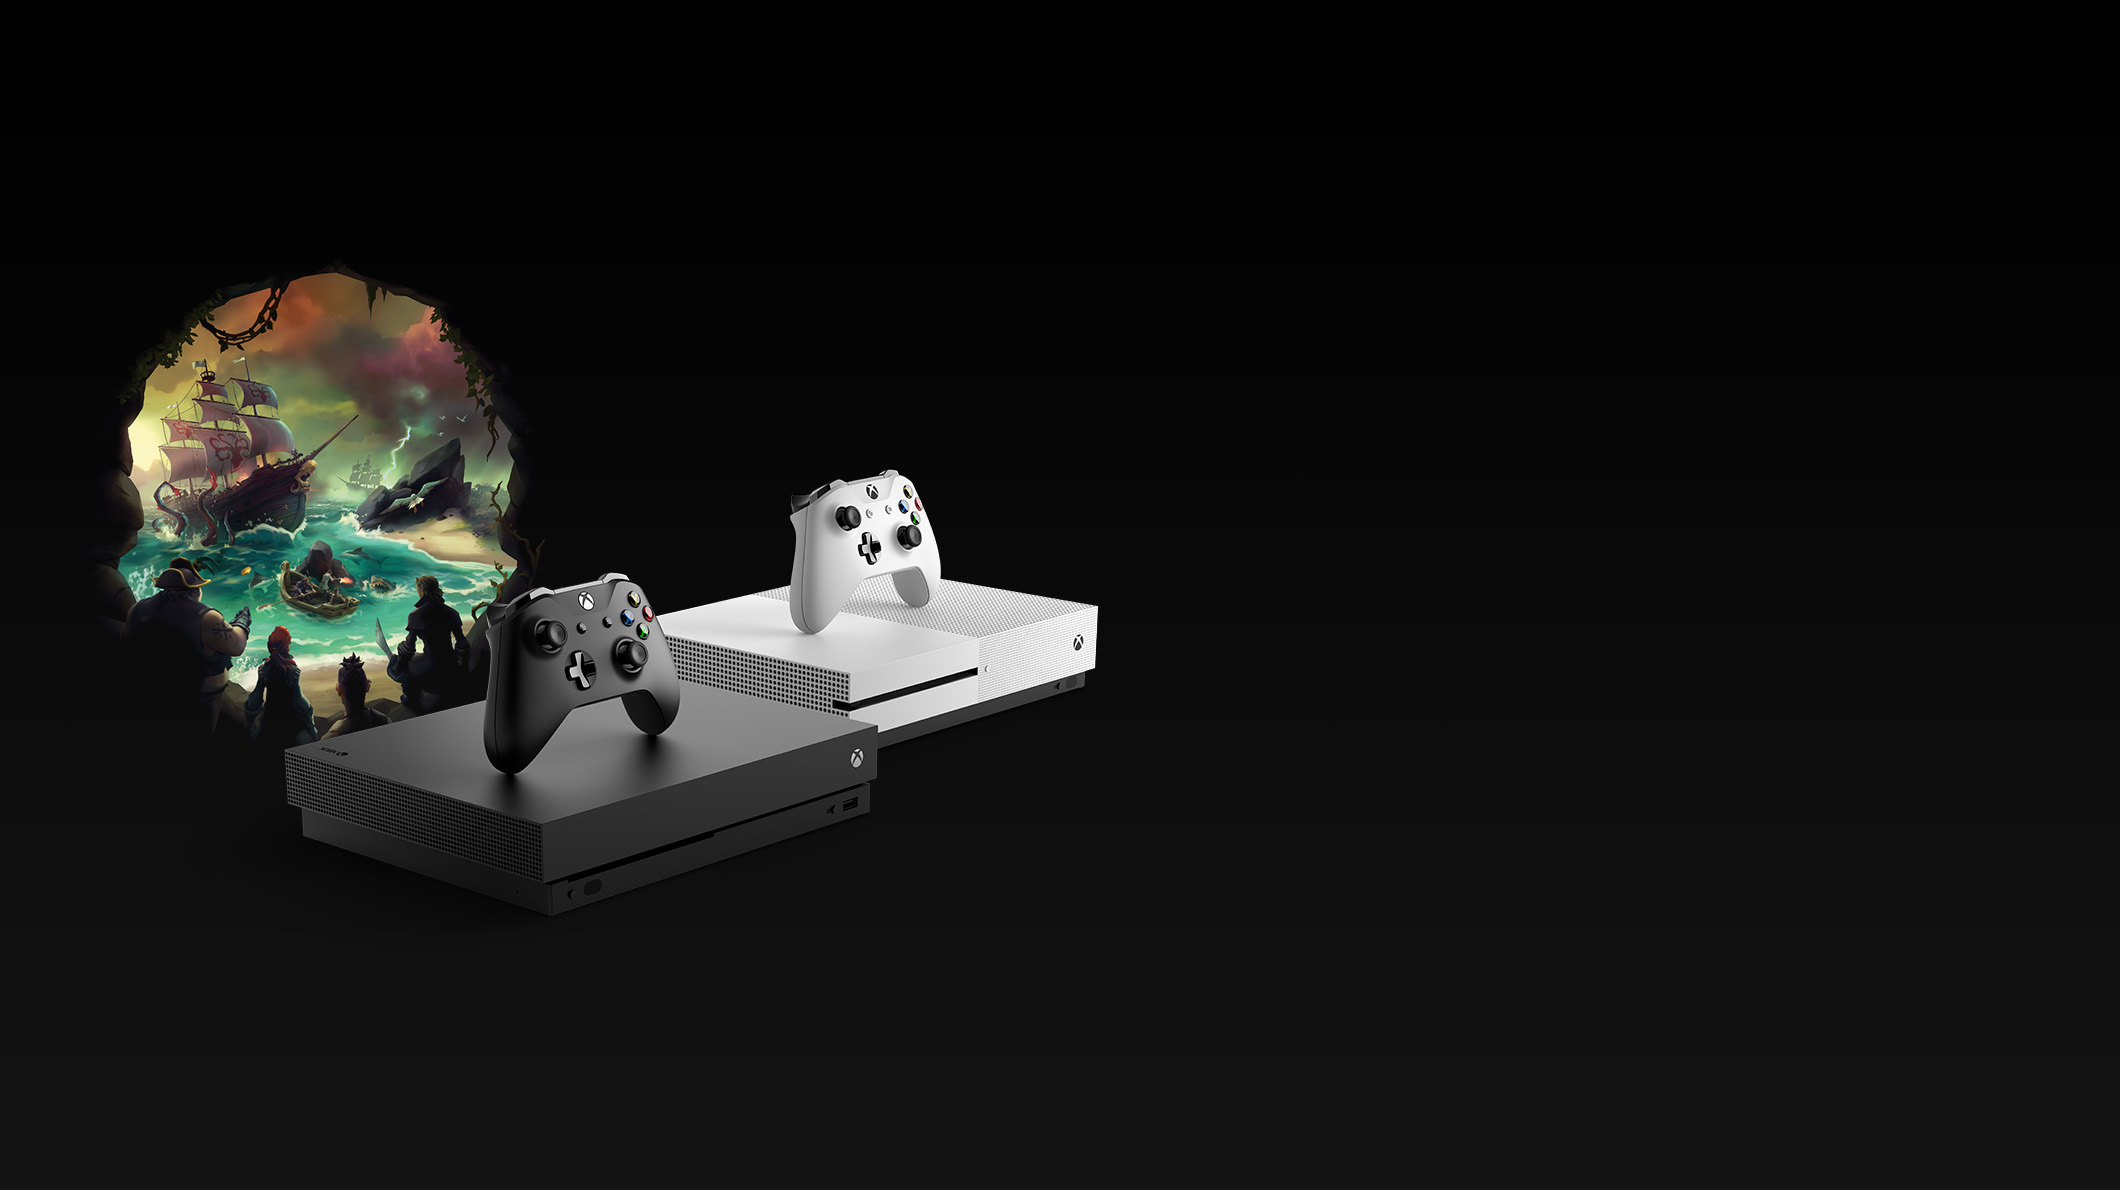 An Xbox One X with a black controller, an Xbox One S with a white controller and Sea of Thieves game art